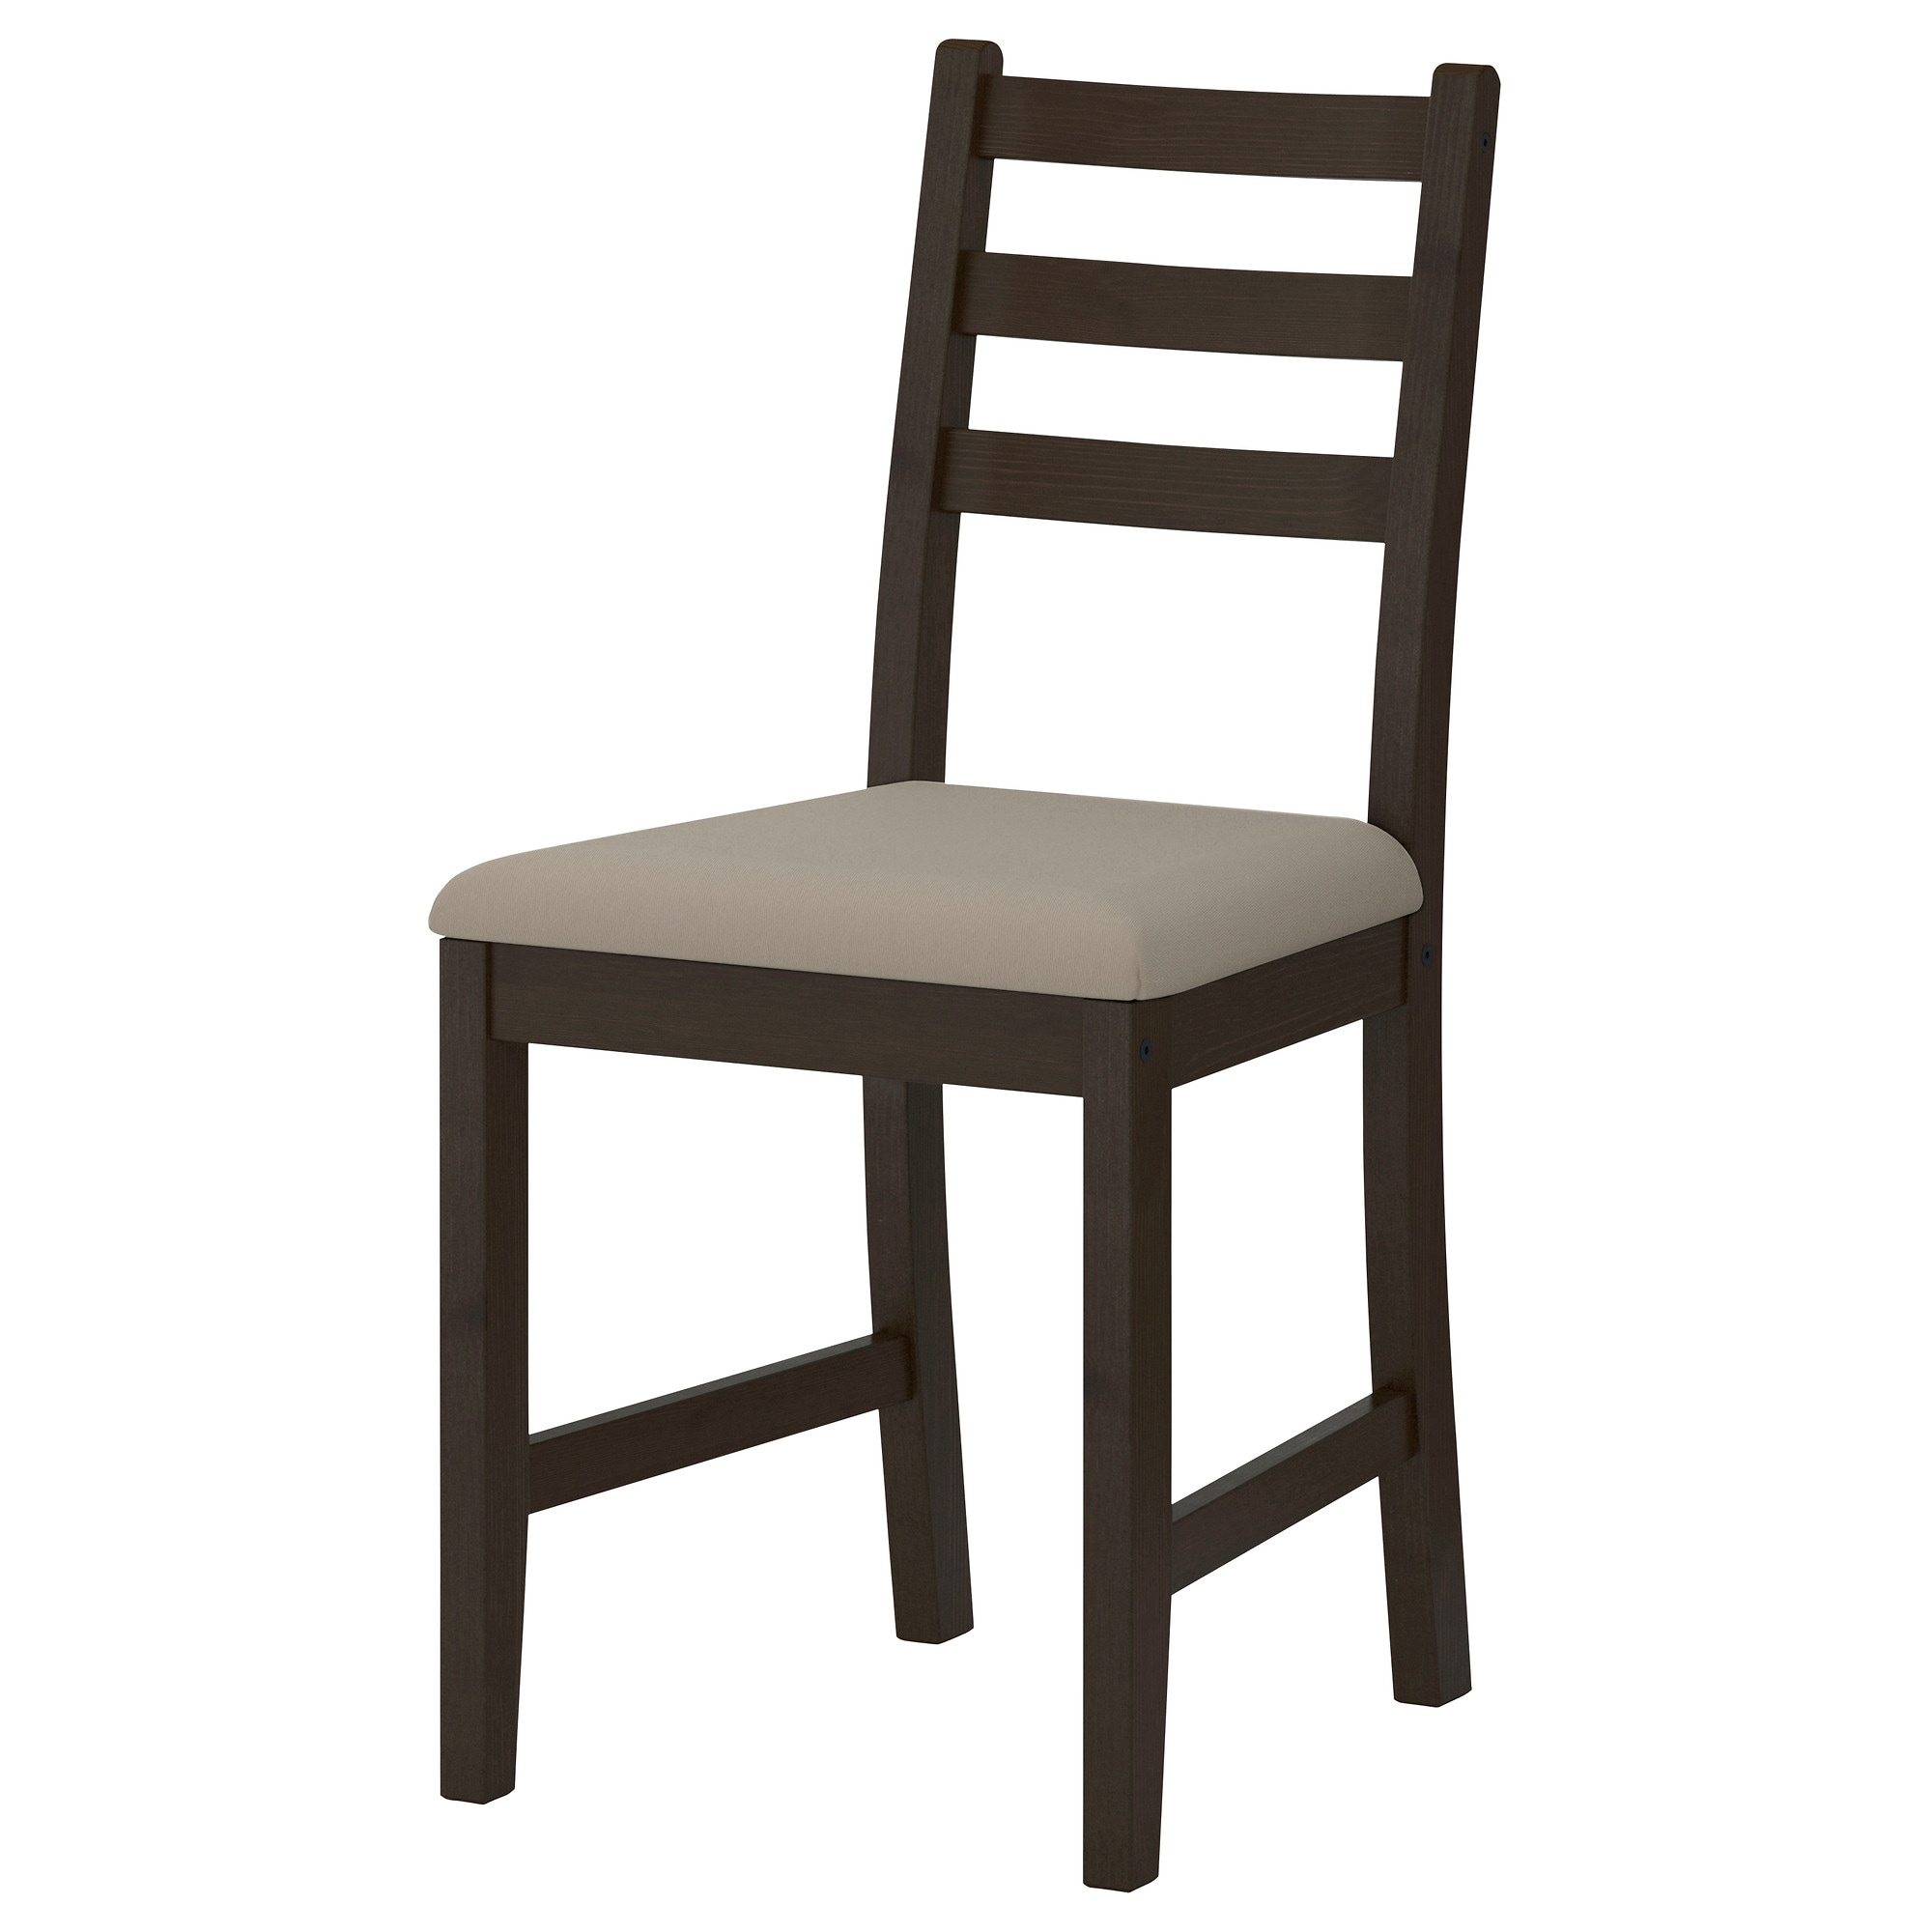 LERHAMN chair  black brown  Vittaryd beige Tested for  243 lb Width Dining chairs   Dining chairs   Upholstered chairs   IKEA. High Back Dining Chairs Ikea. Home Design Ideas